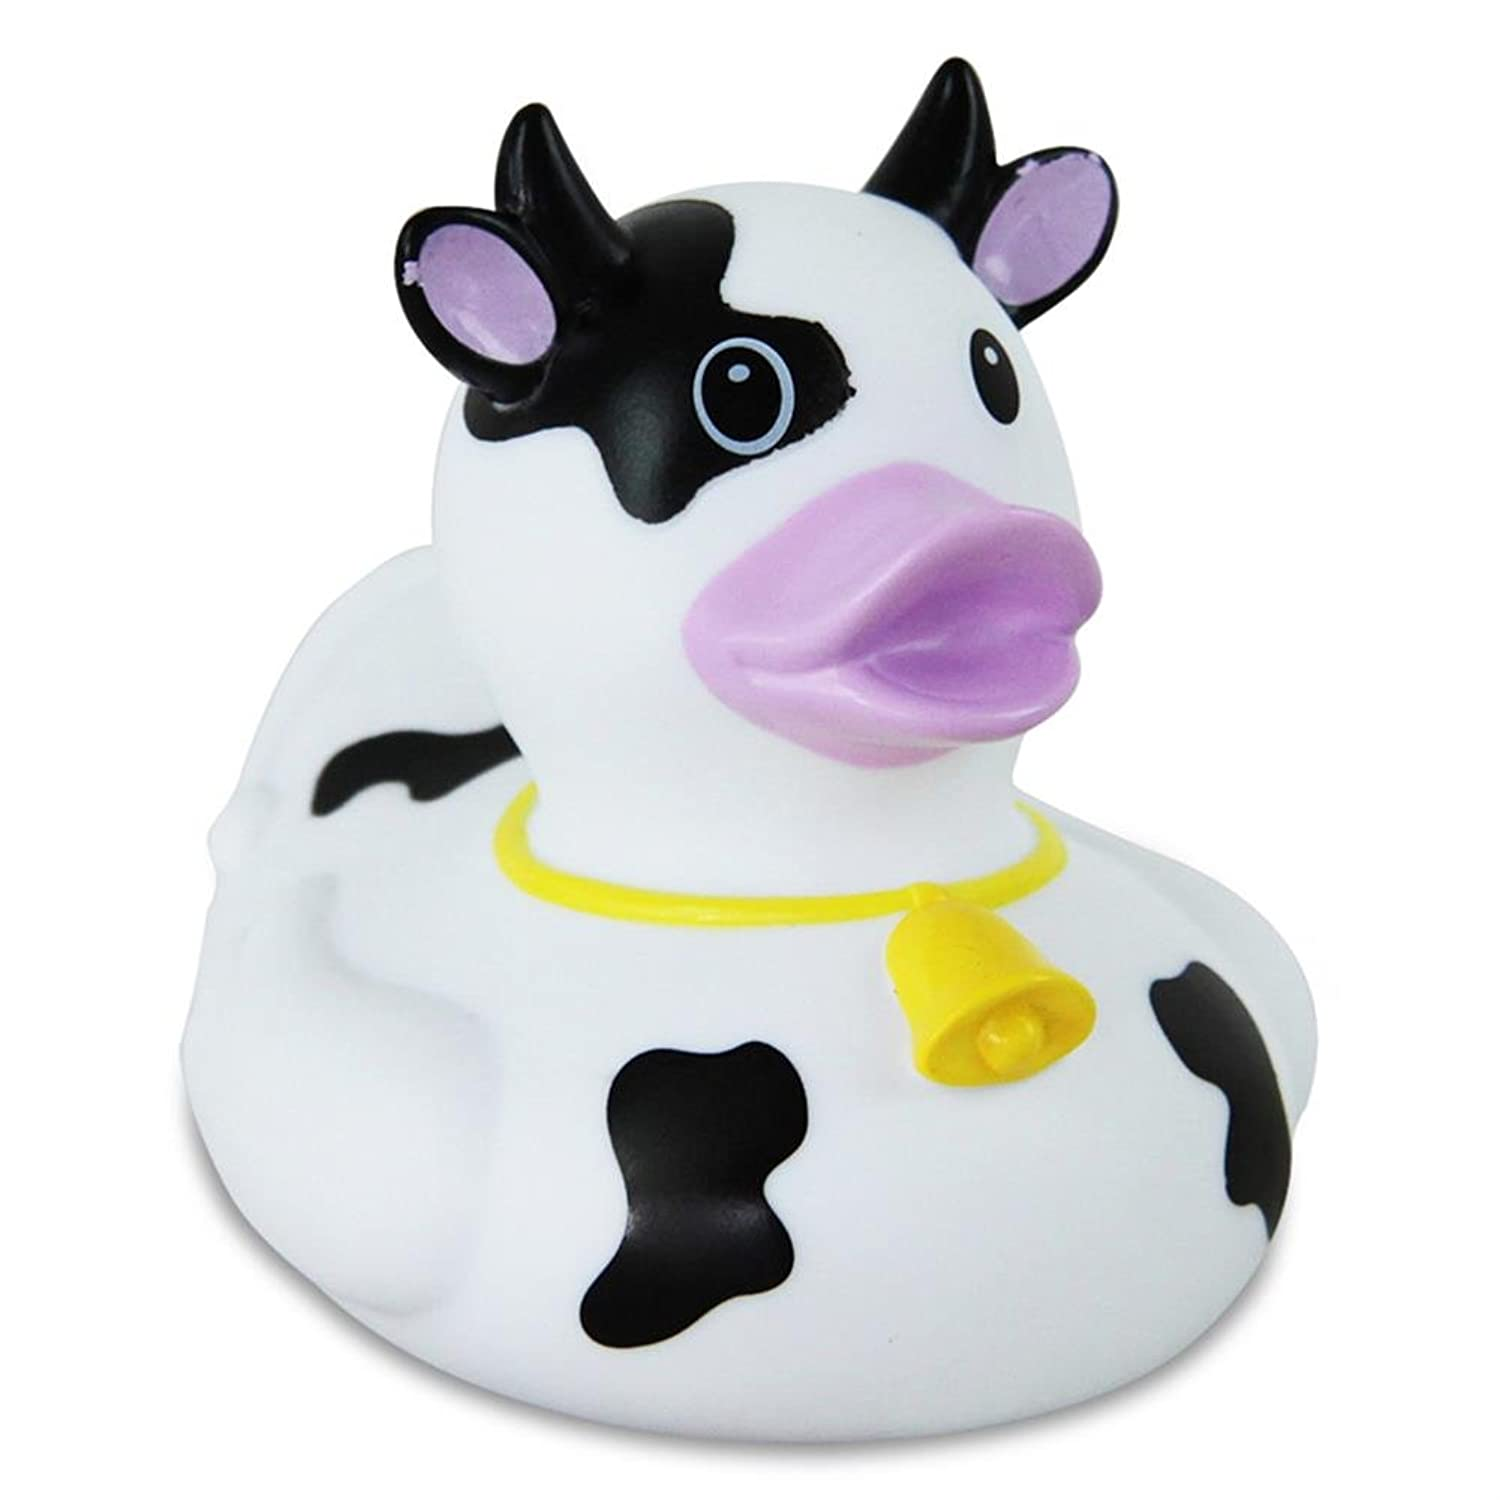 Rubber Duck Black and White Cow - ゴム製のアヒル …